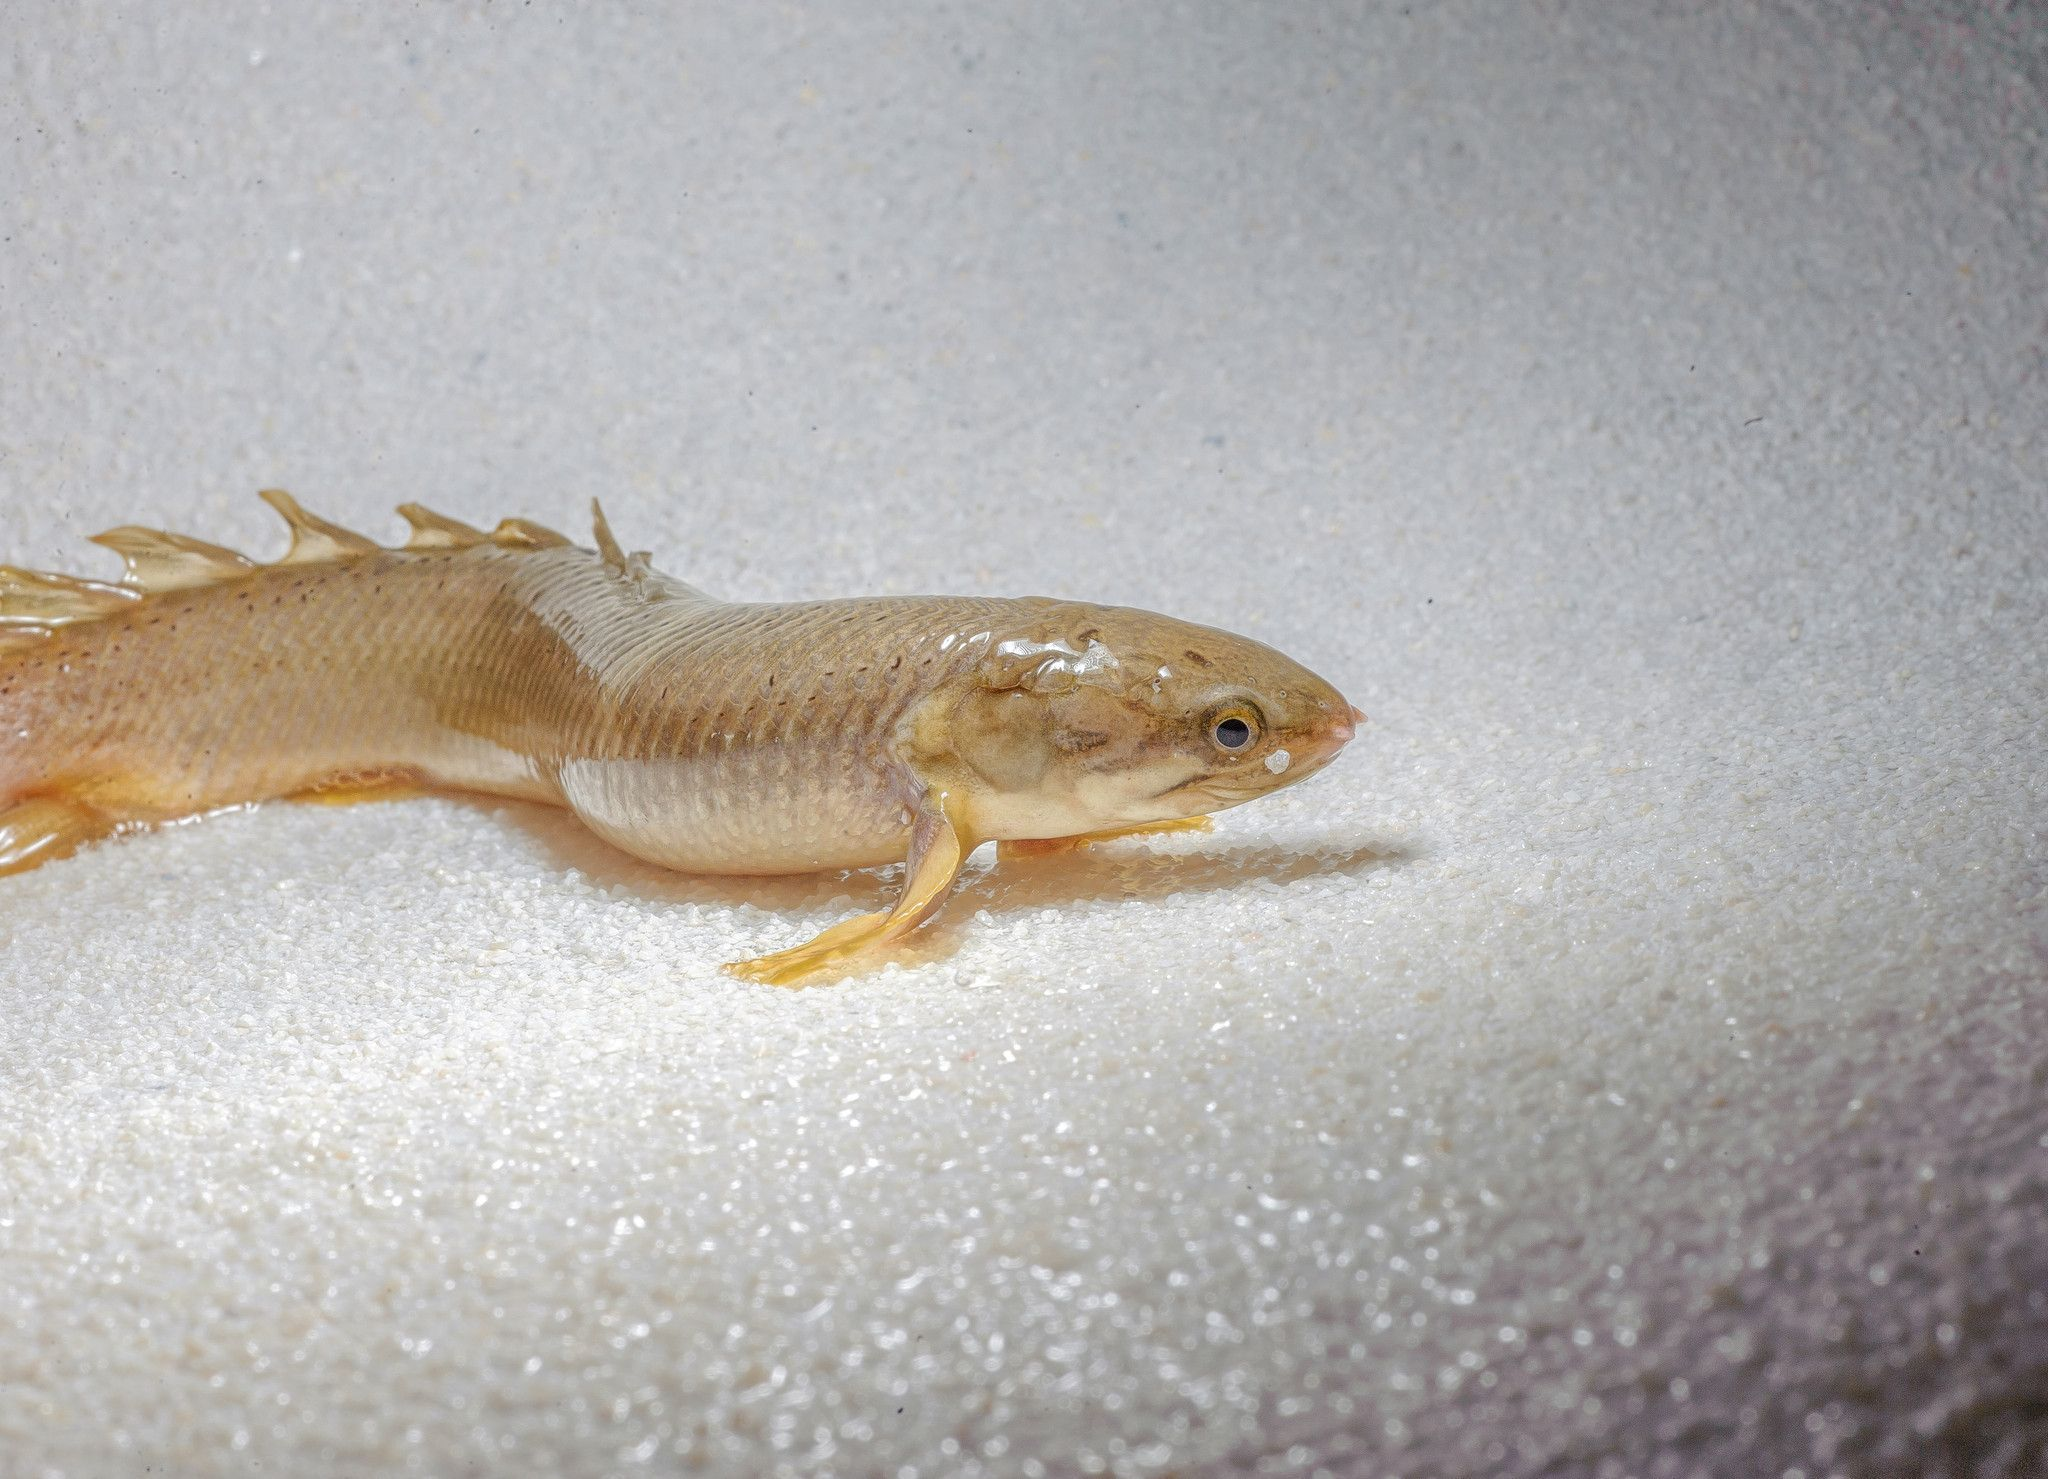 Video A 'leg up' in evolution? Watch this fish walk on